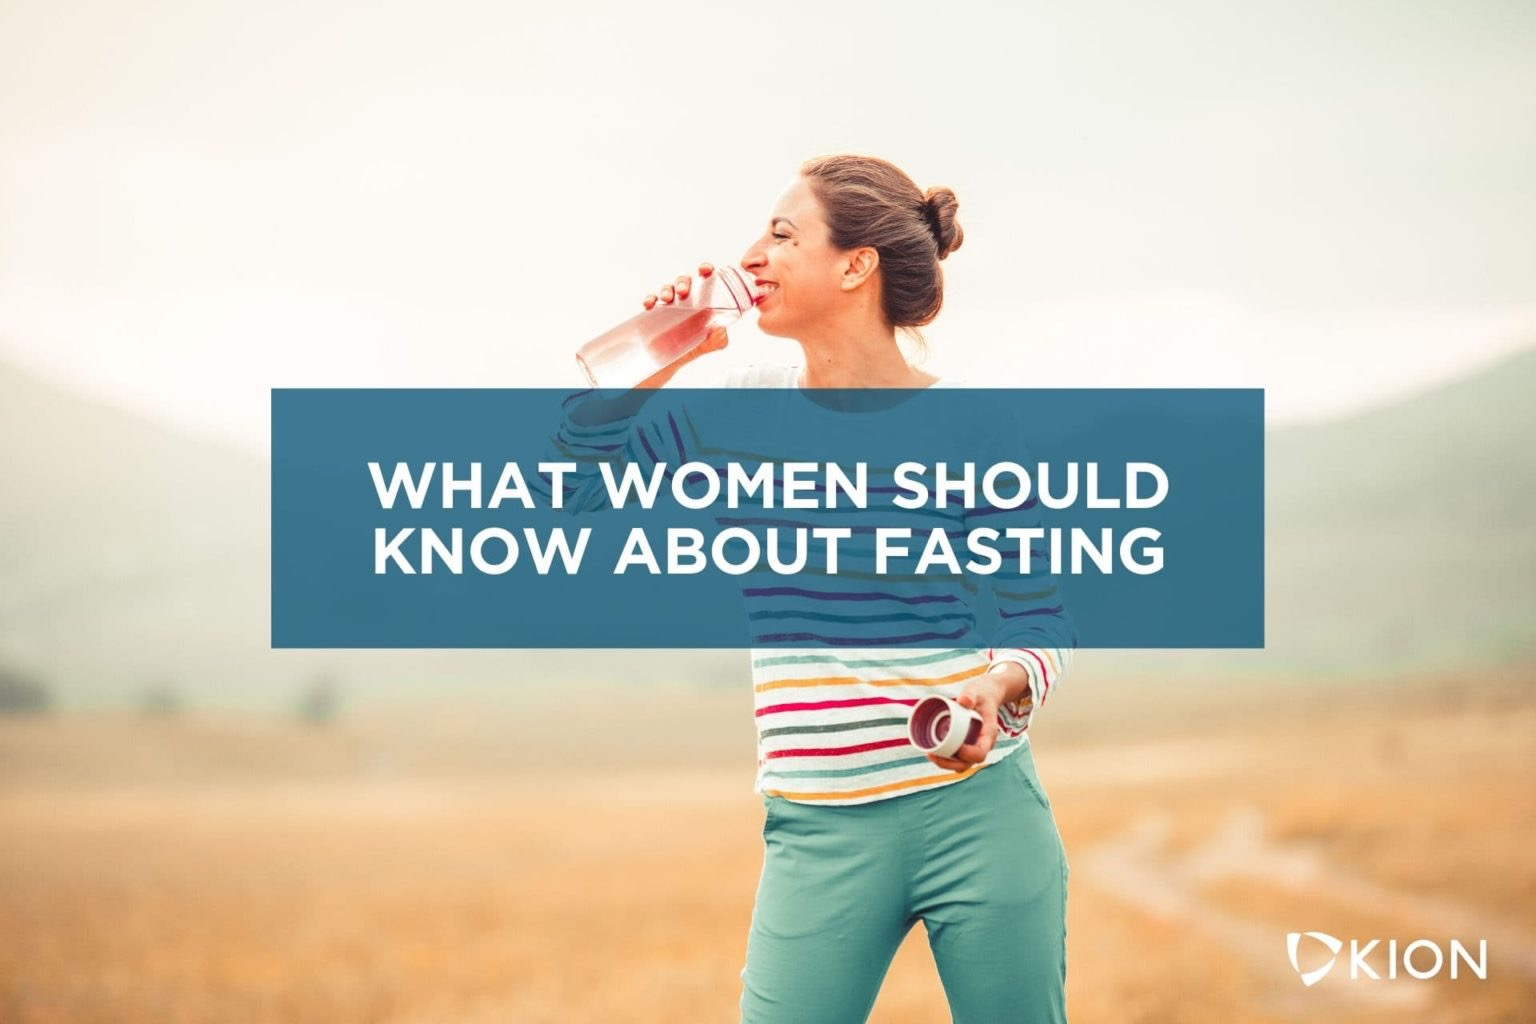 The Complete Guide To Fasting For Women Part 1: Should Females Fast?